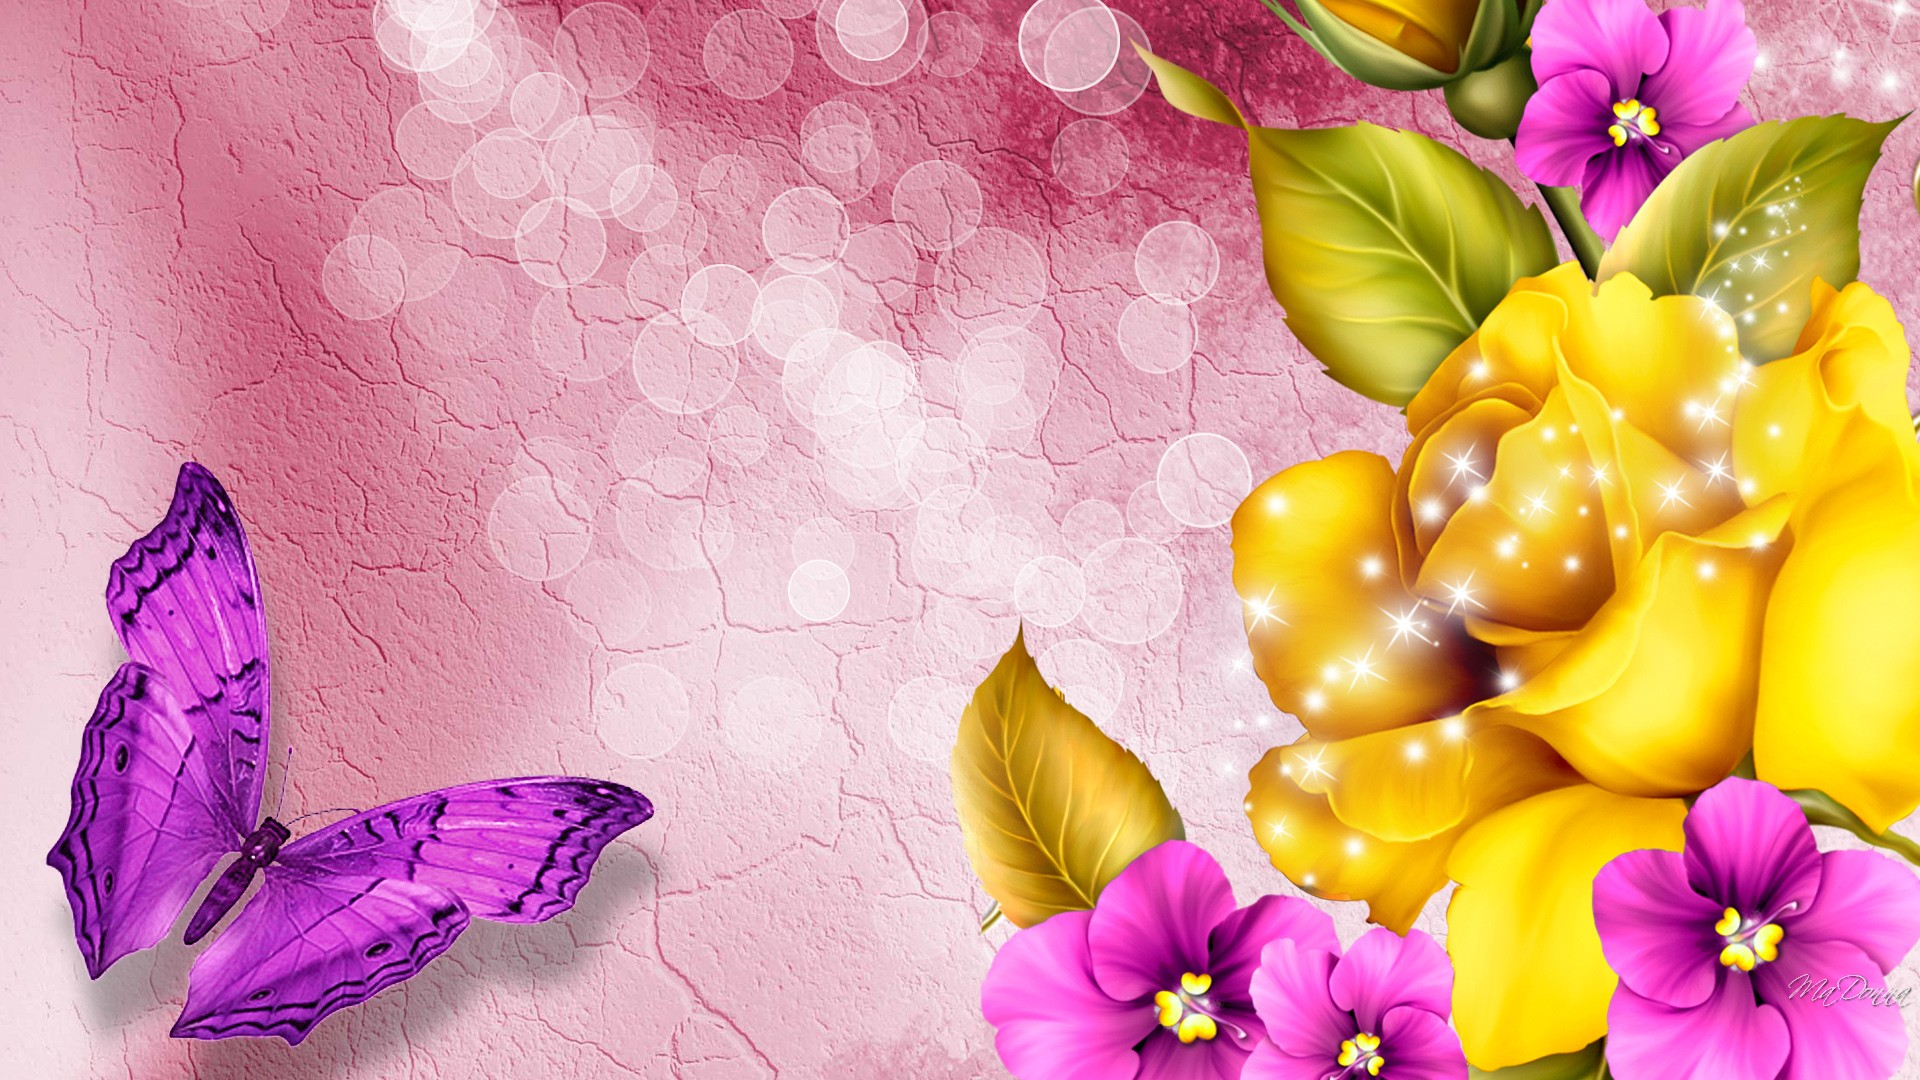 beautiful wallpaper flowers butterfly colorful 1920x1080 1920x1080